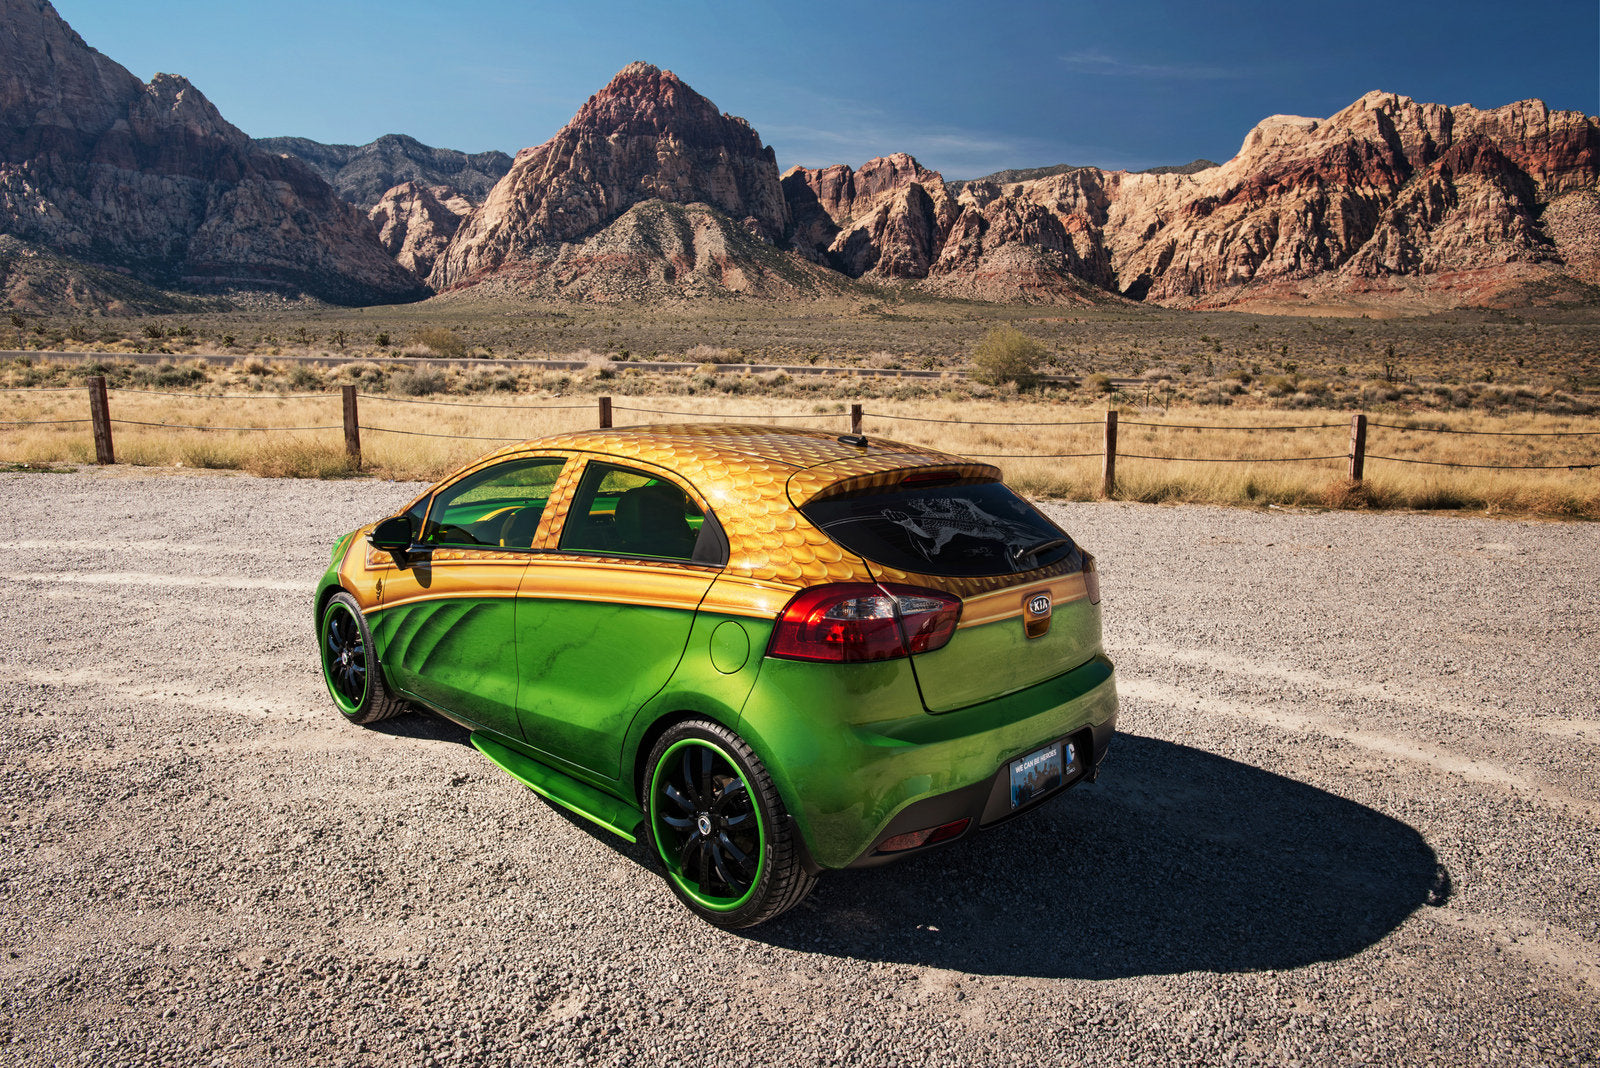 Second Silde: SEMA 2012 Kia 5-Door Rio Aquaman - Back